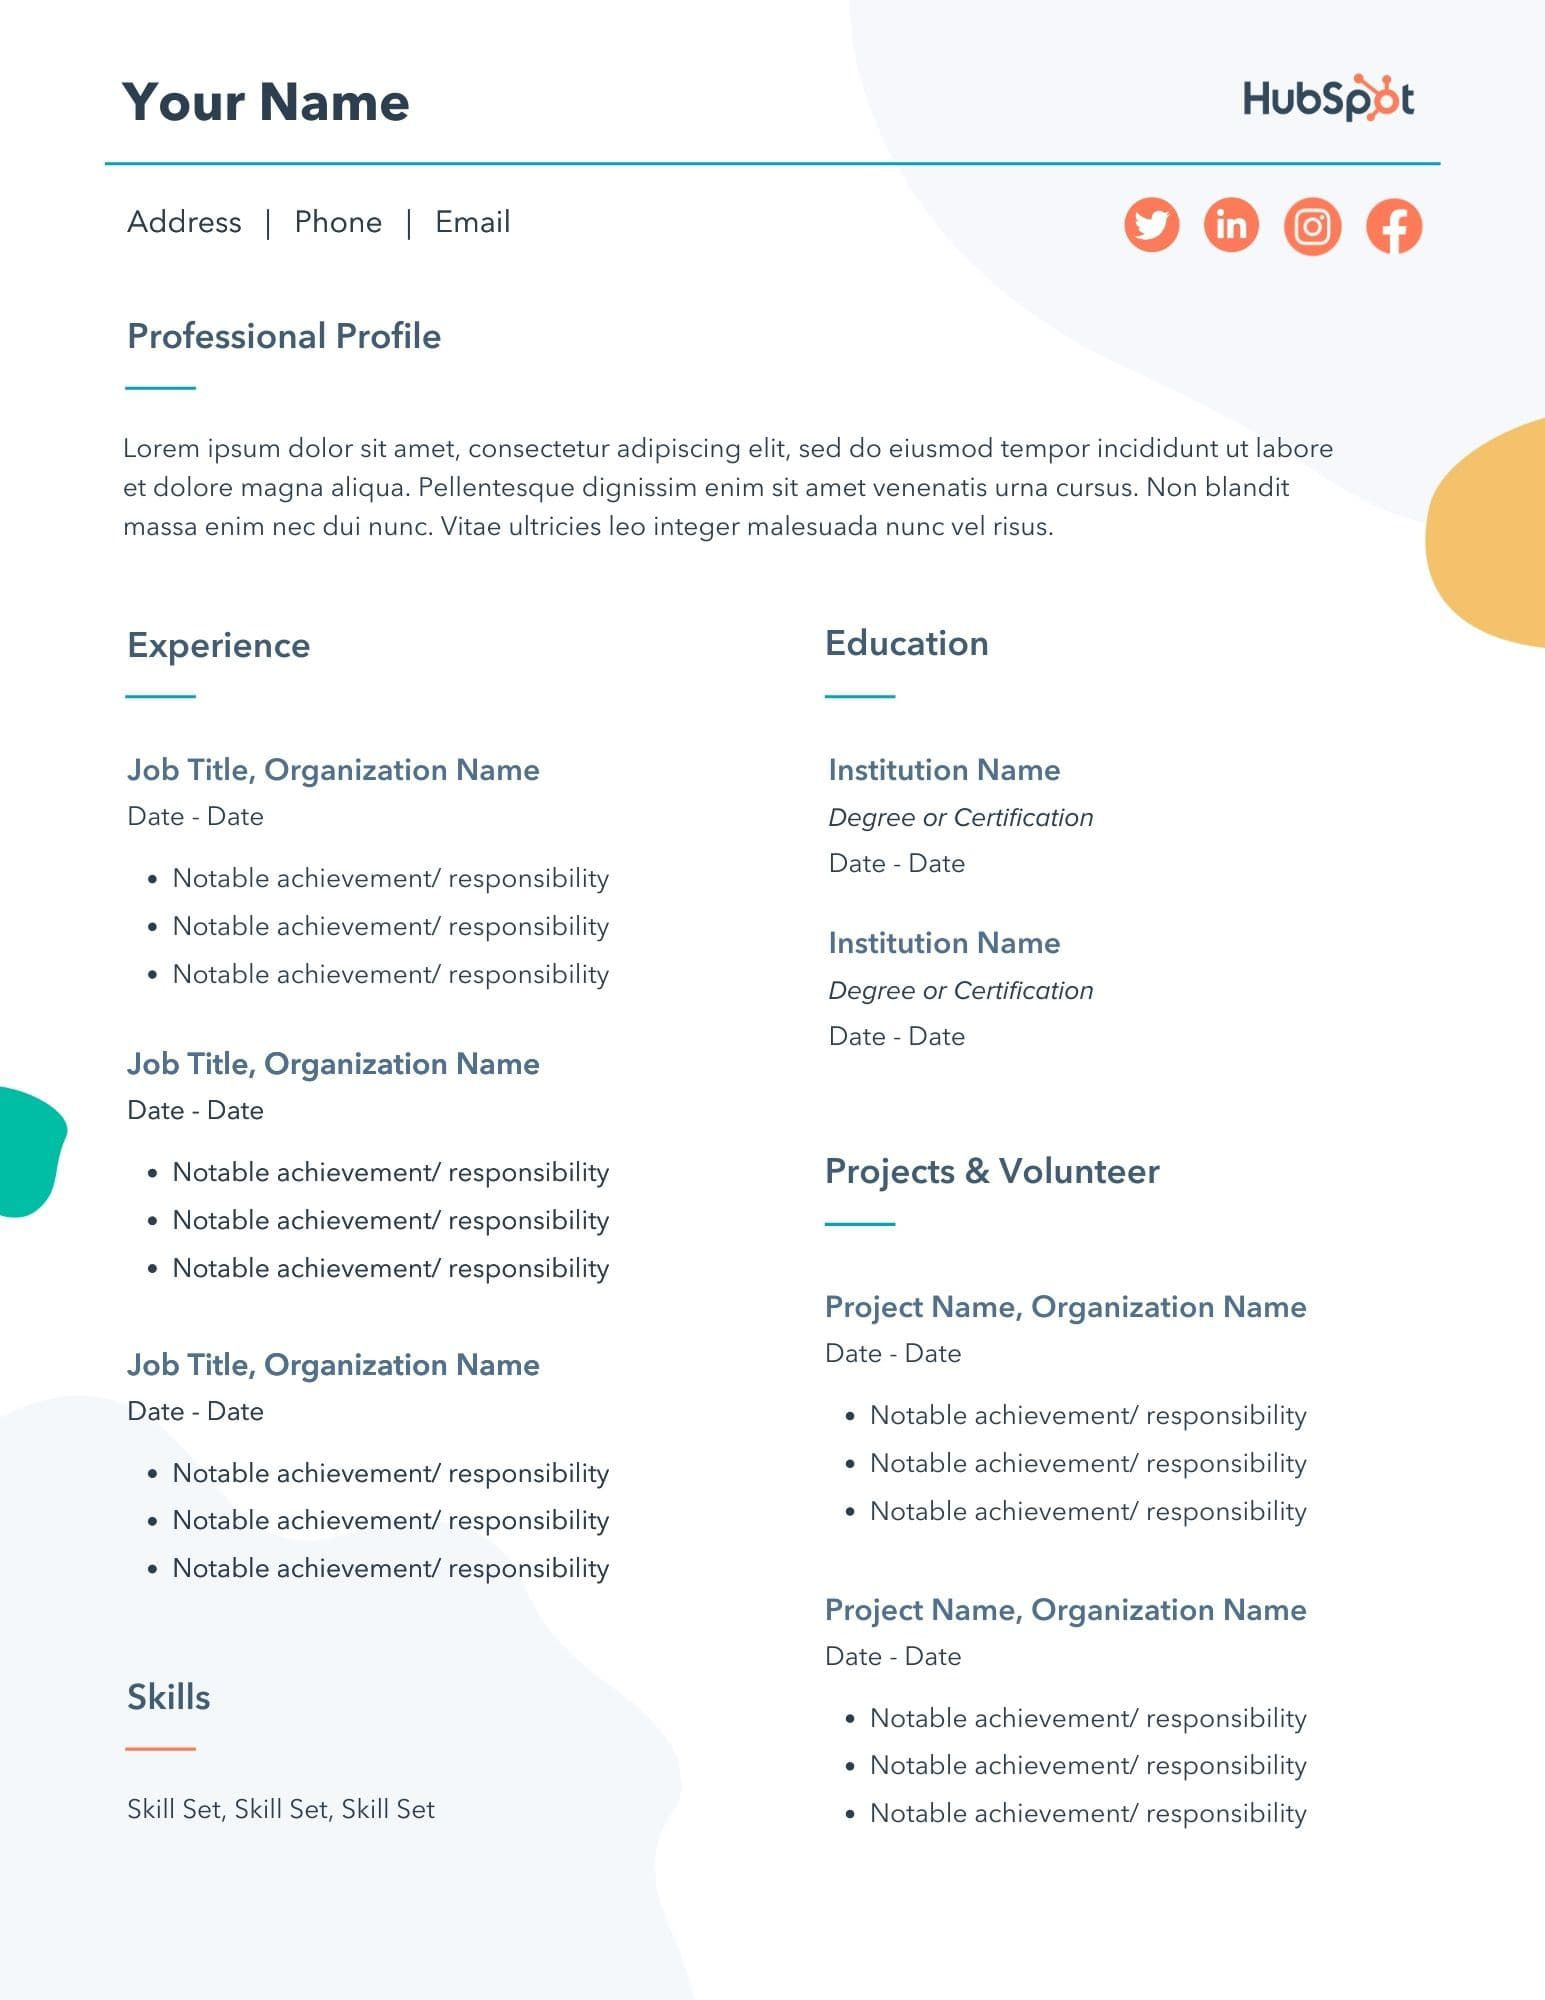 004 Top Resume Template For First Job Image  After College Sample Student TeenagerFull